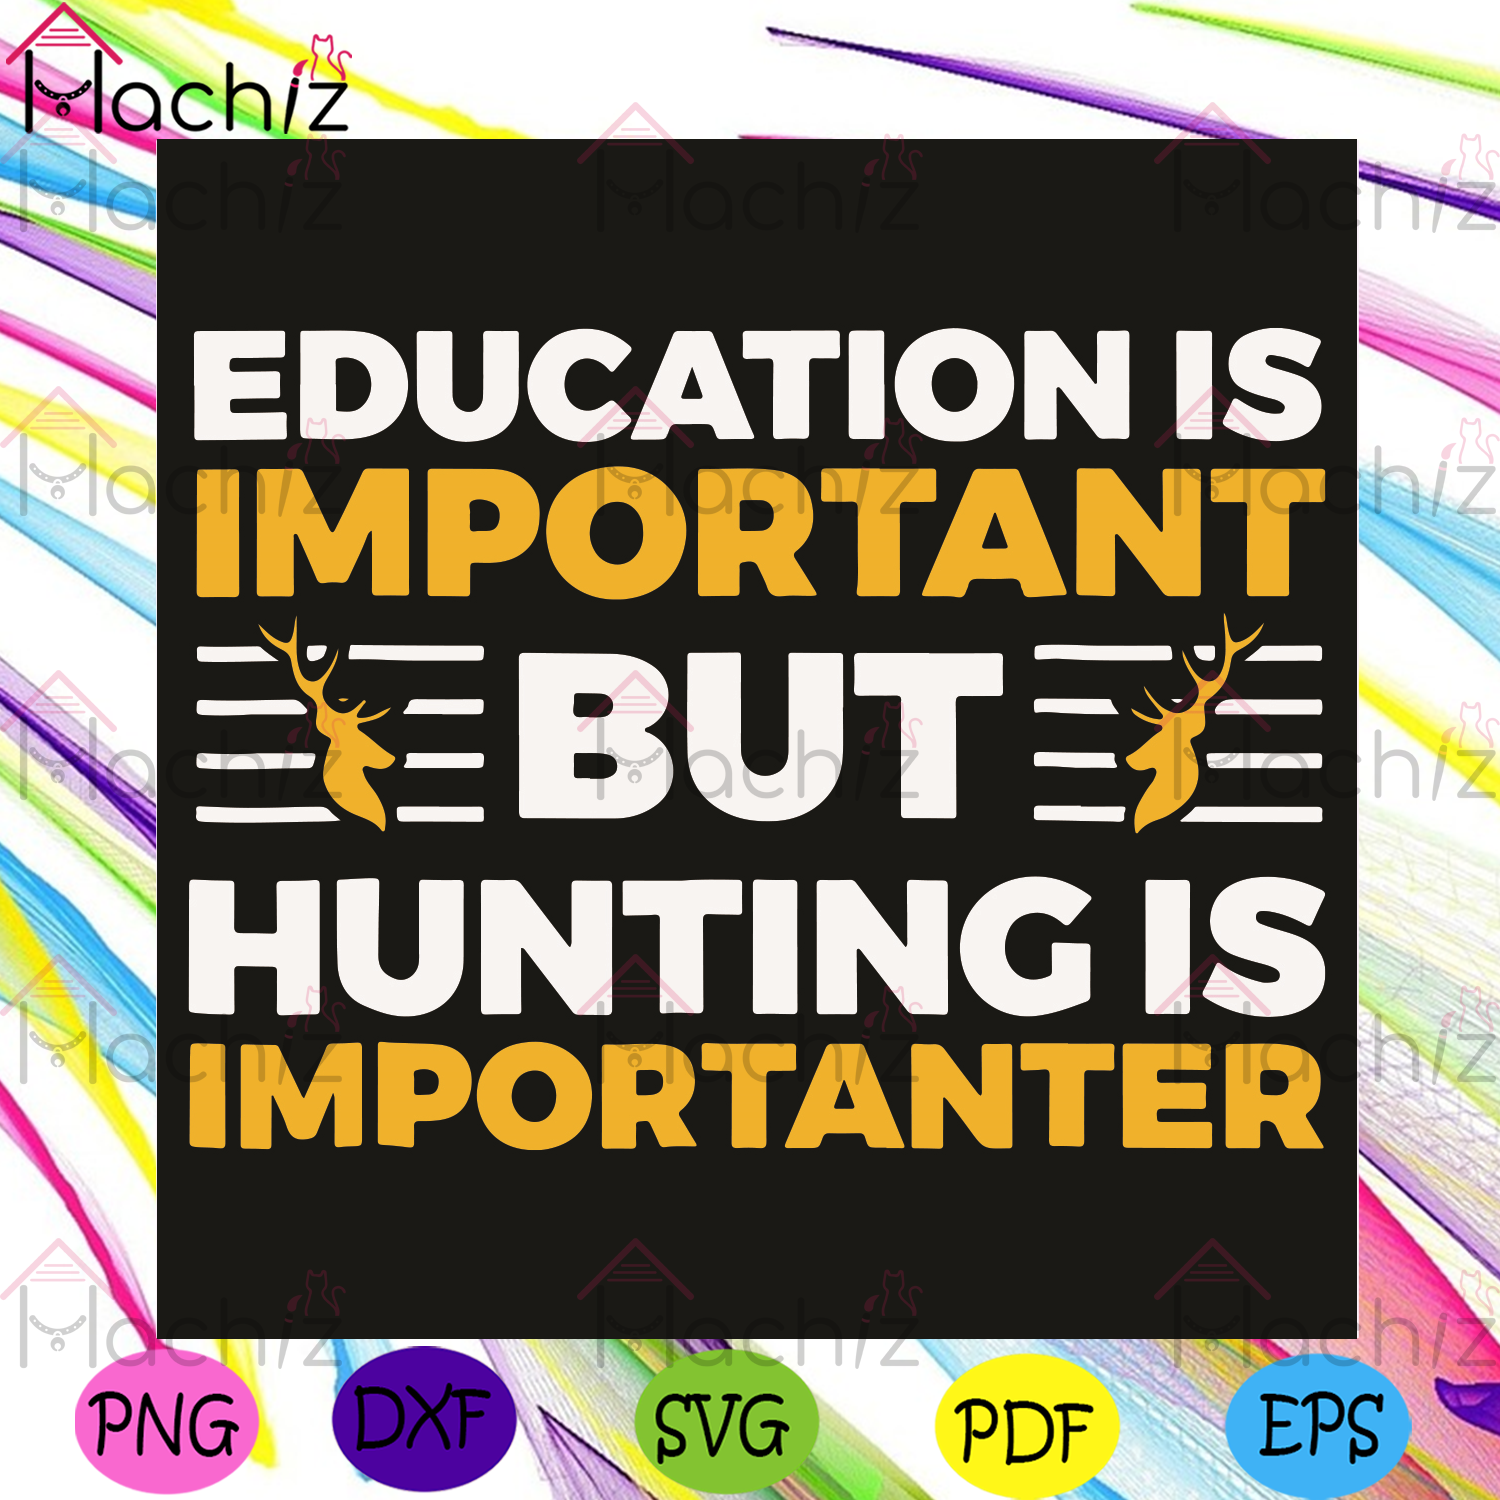 Education Is Important But Hunting Is Importanter Svg, Trending Svg, Hunting Svg, Hunters Svg, Education Svg, Deers Svg, Hunting Lovers Svg, Hunting Gifts Svg, Hunting Quotes Svg, Funny Svg, Funny Quotes Svg, Vintage Svg